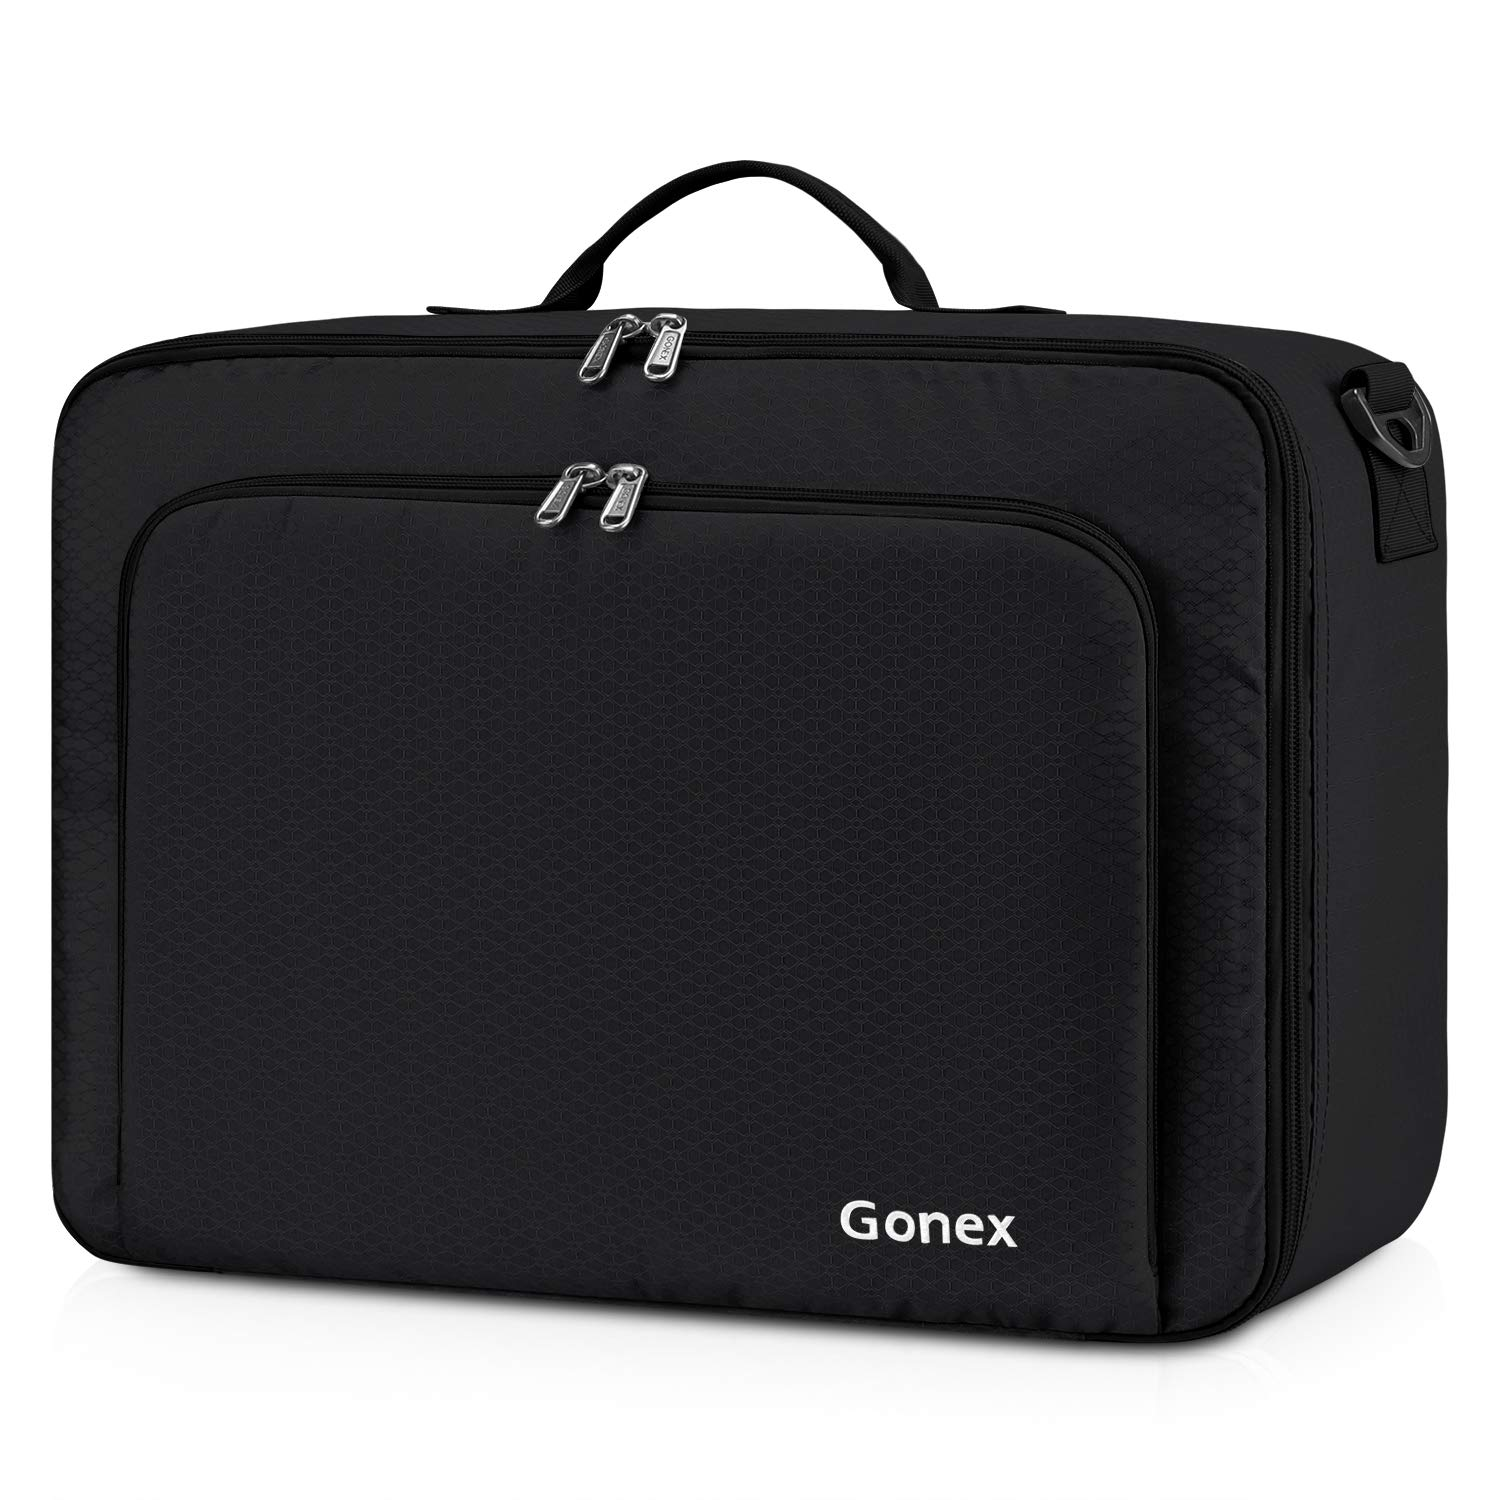 Gonex Travel Duffel Bag, Portable Carry on Luggage Personal Item Bag for Airlines, Water& Tear-Resistant 20L Black